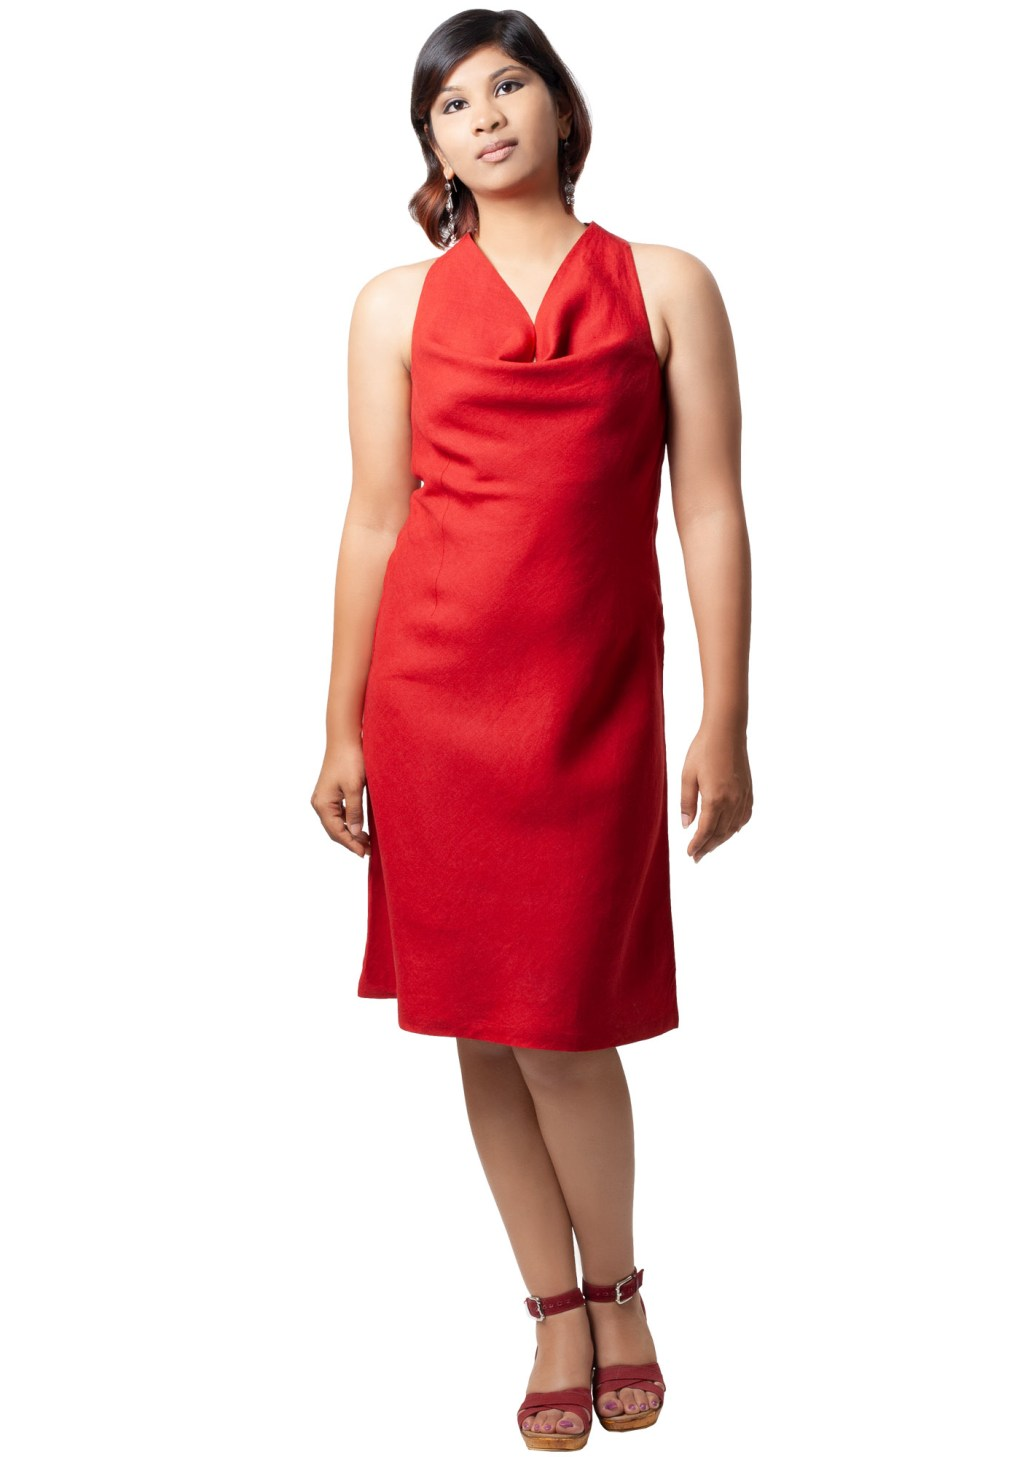 MINC womens ecofriendly clothing store Ruby Halter Cowl Dress In Red Linen